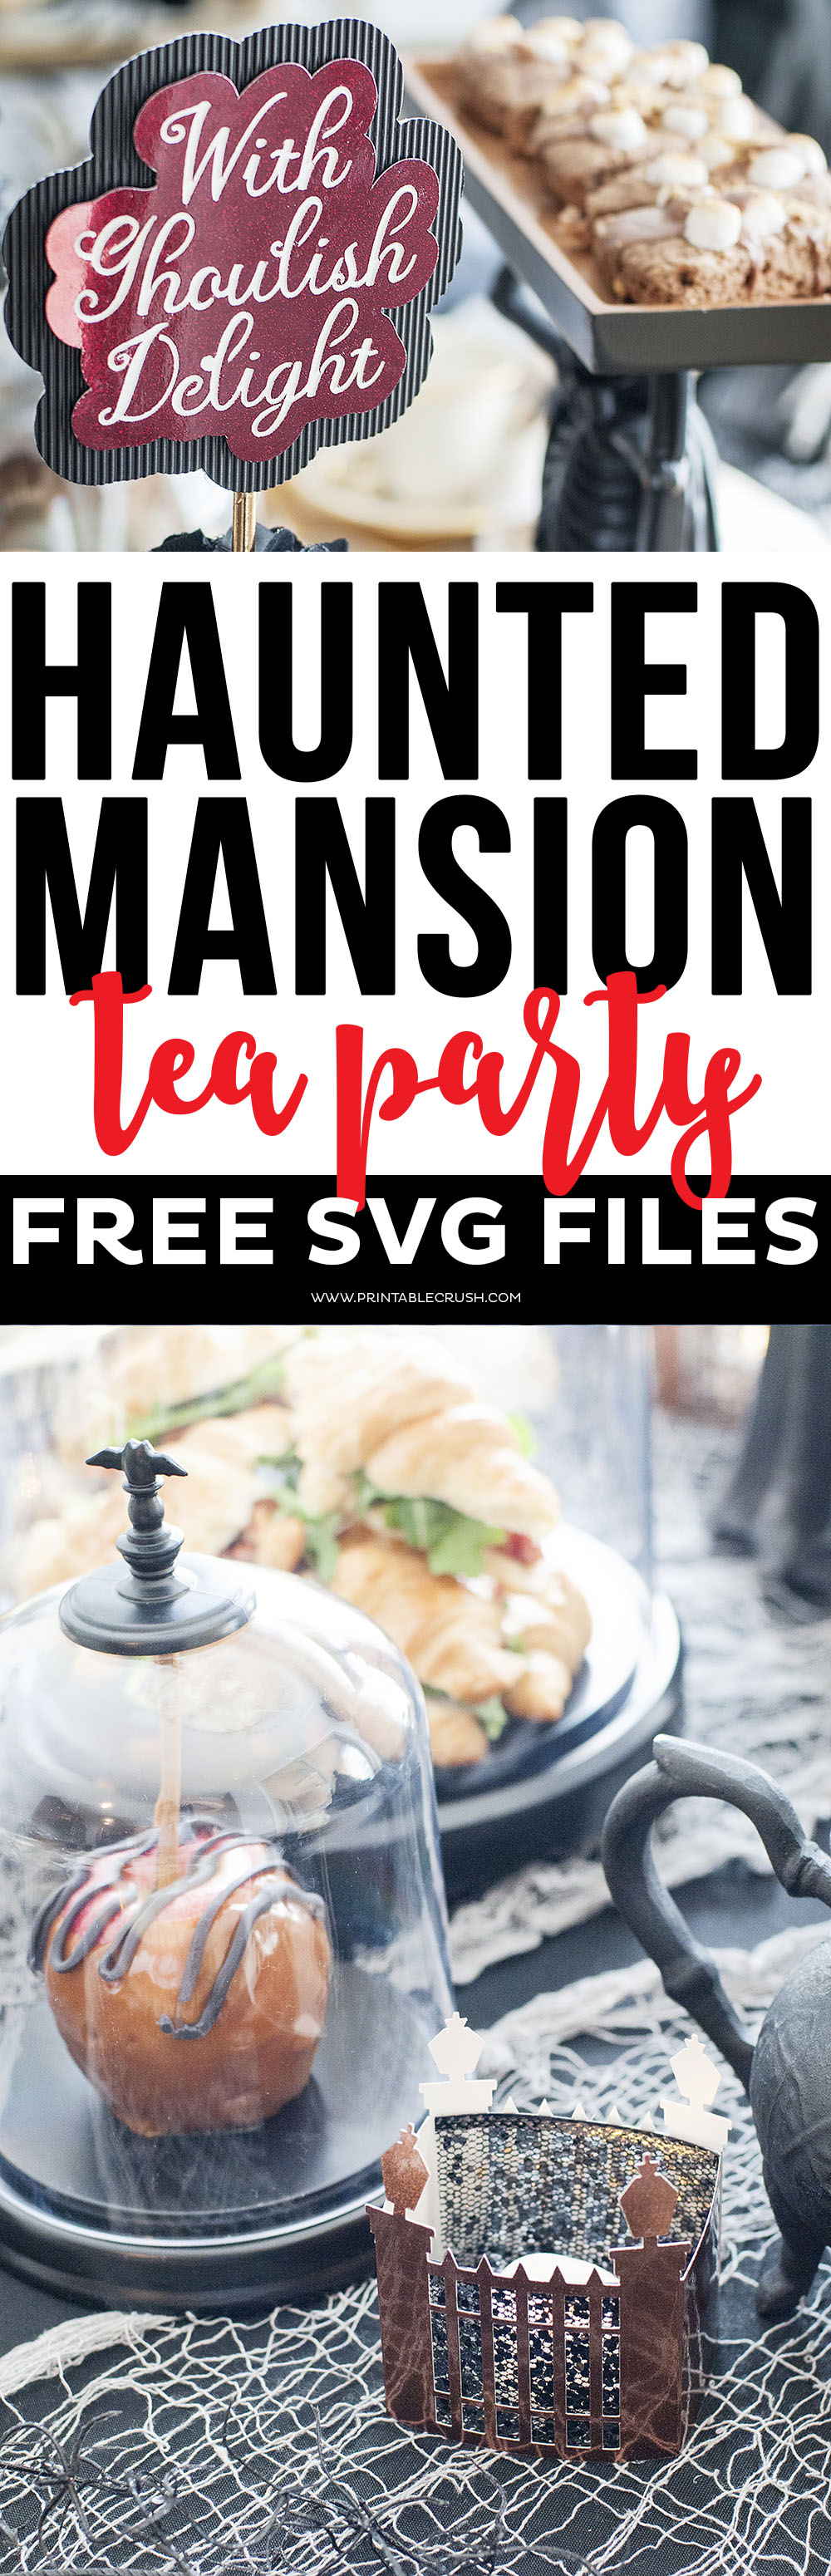 Download these FREE Haunted Mansion Tea Party SVG Files to use for your next party idea, or for your Halloween Decor! Includes 4 spooky Halloween designs!